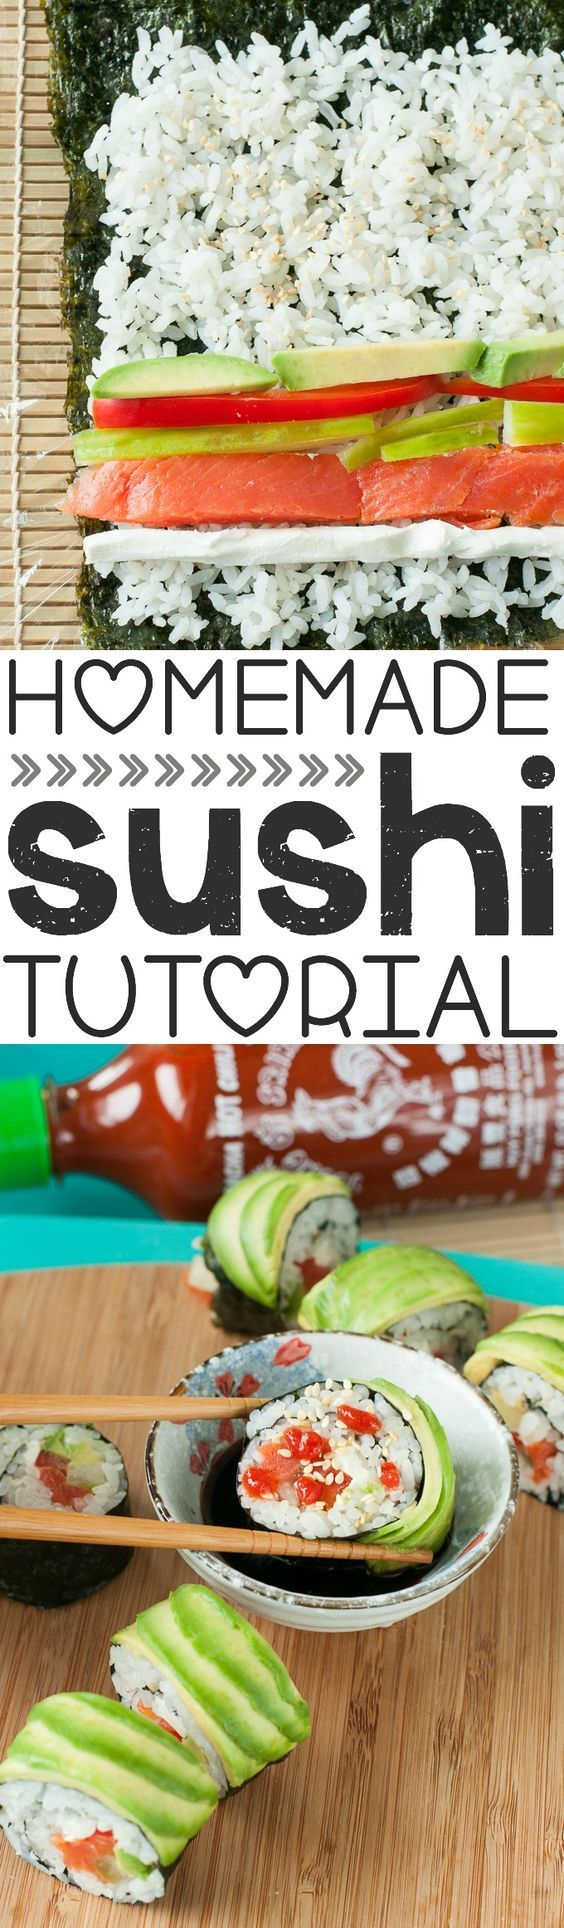 Homemade Sushi: Tips, Tricks, and Recipes for delicious at-home sushi rolls -- love this tutorial, pinning for later